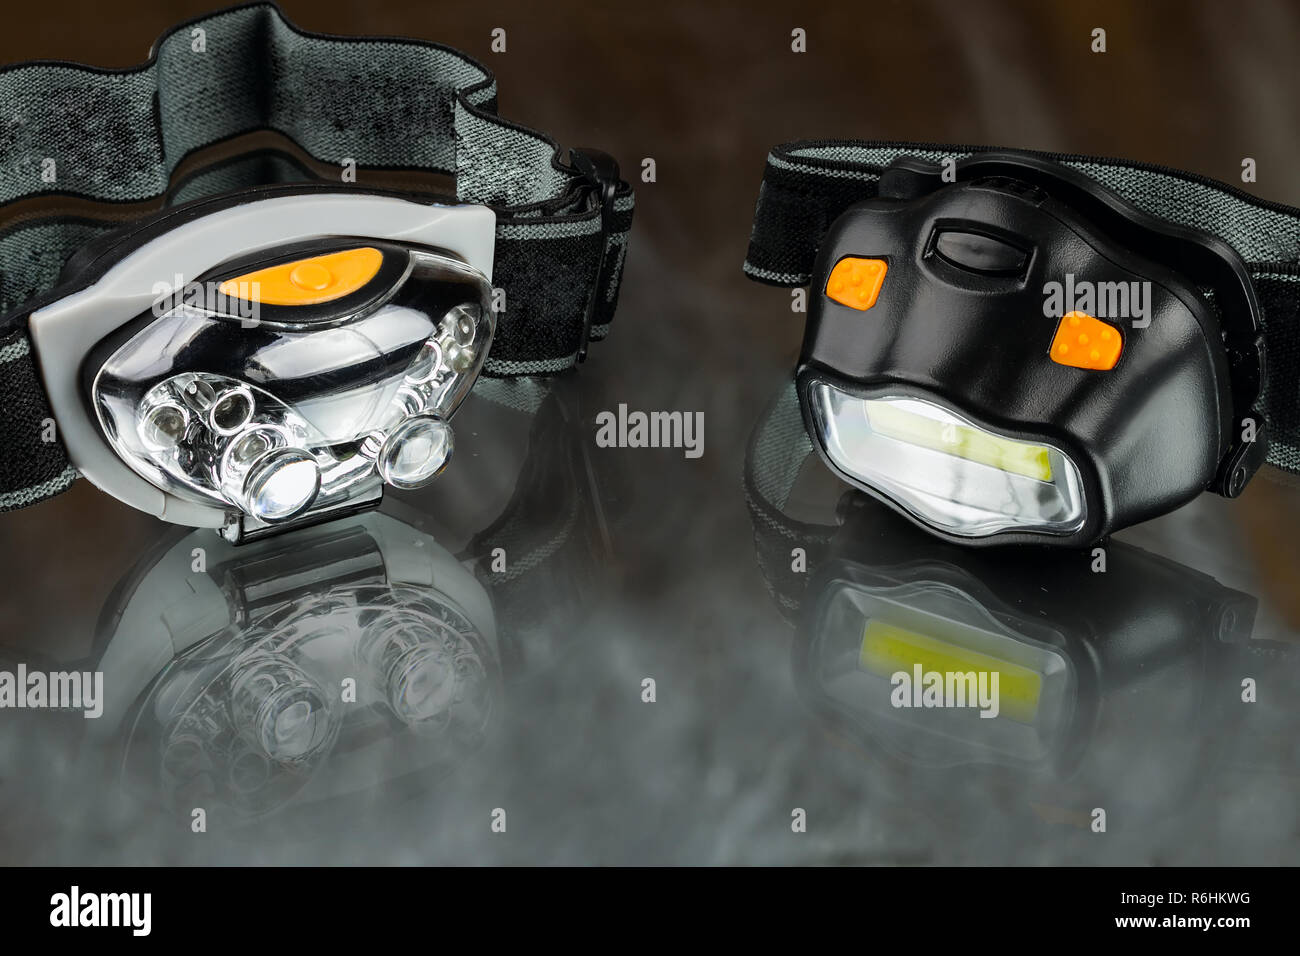 head led lamps - Stock Image